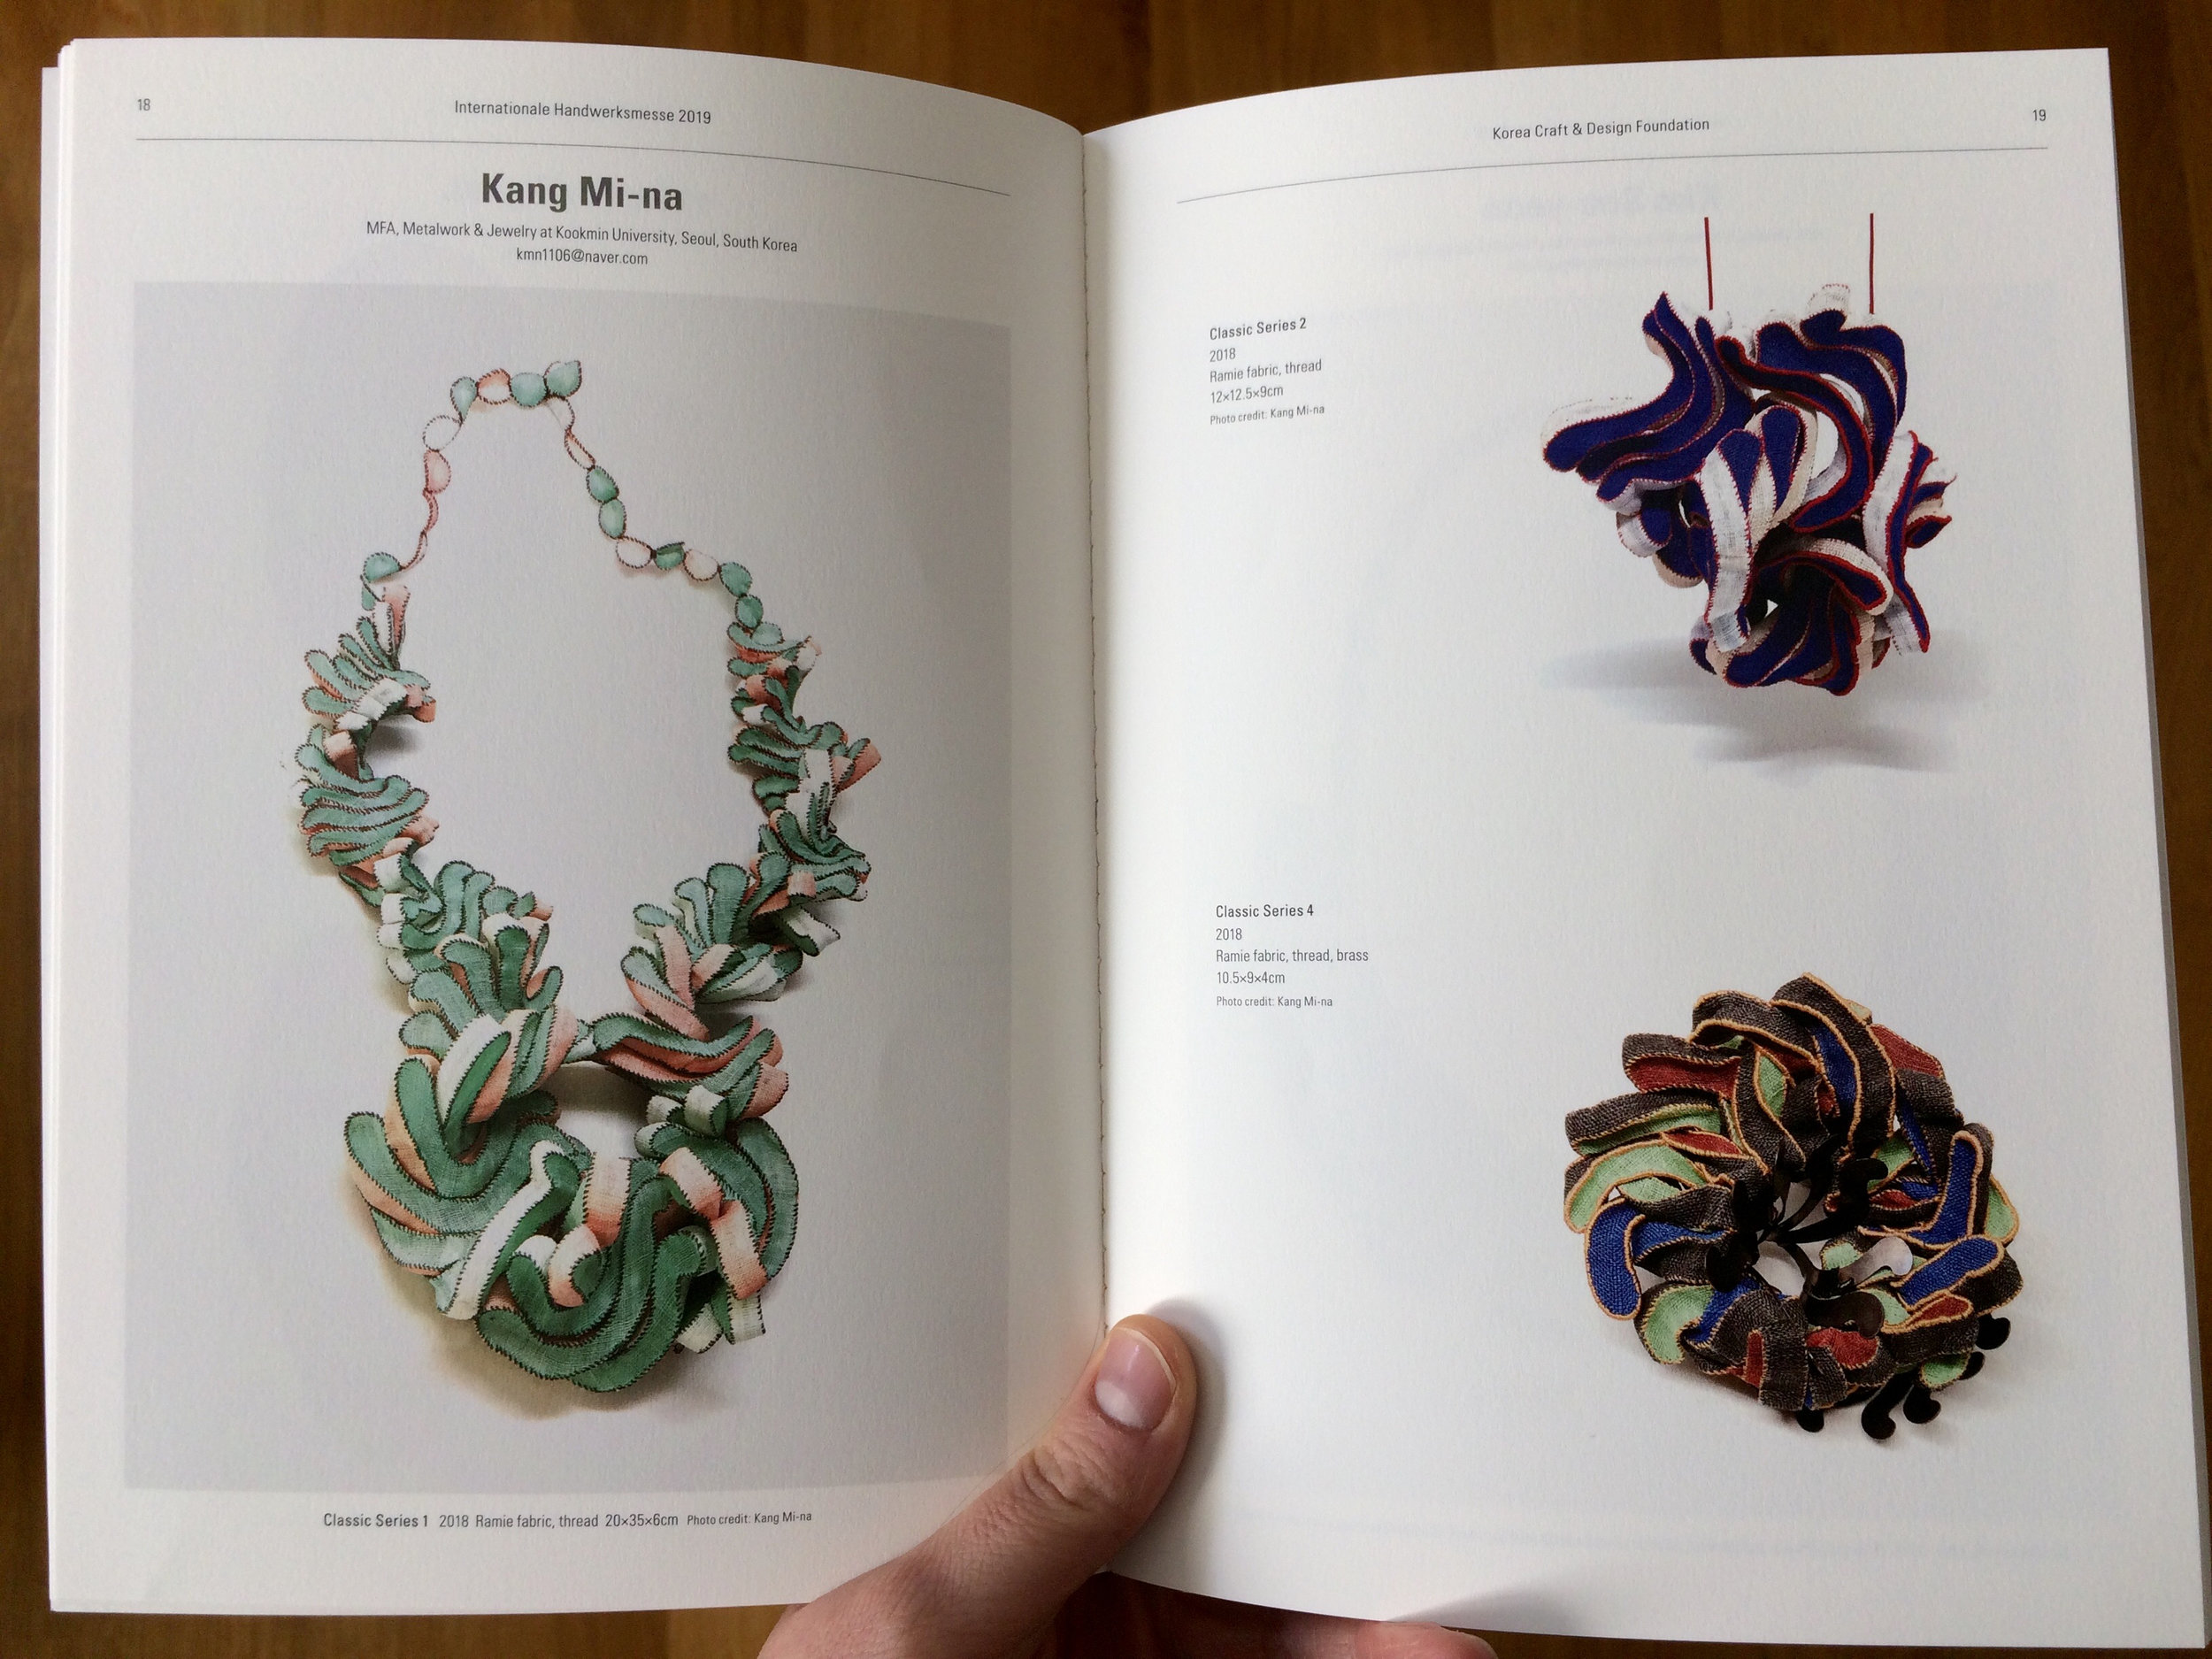 A colour catalogue of the Korea Craft & Design Foundation display at Munich Jewellery Week 2019.